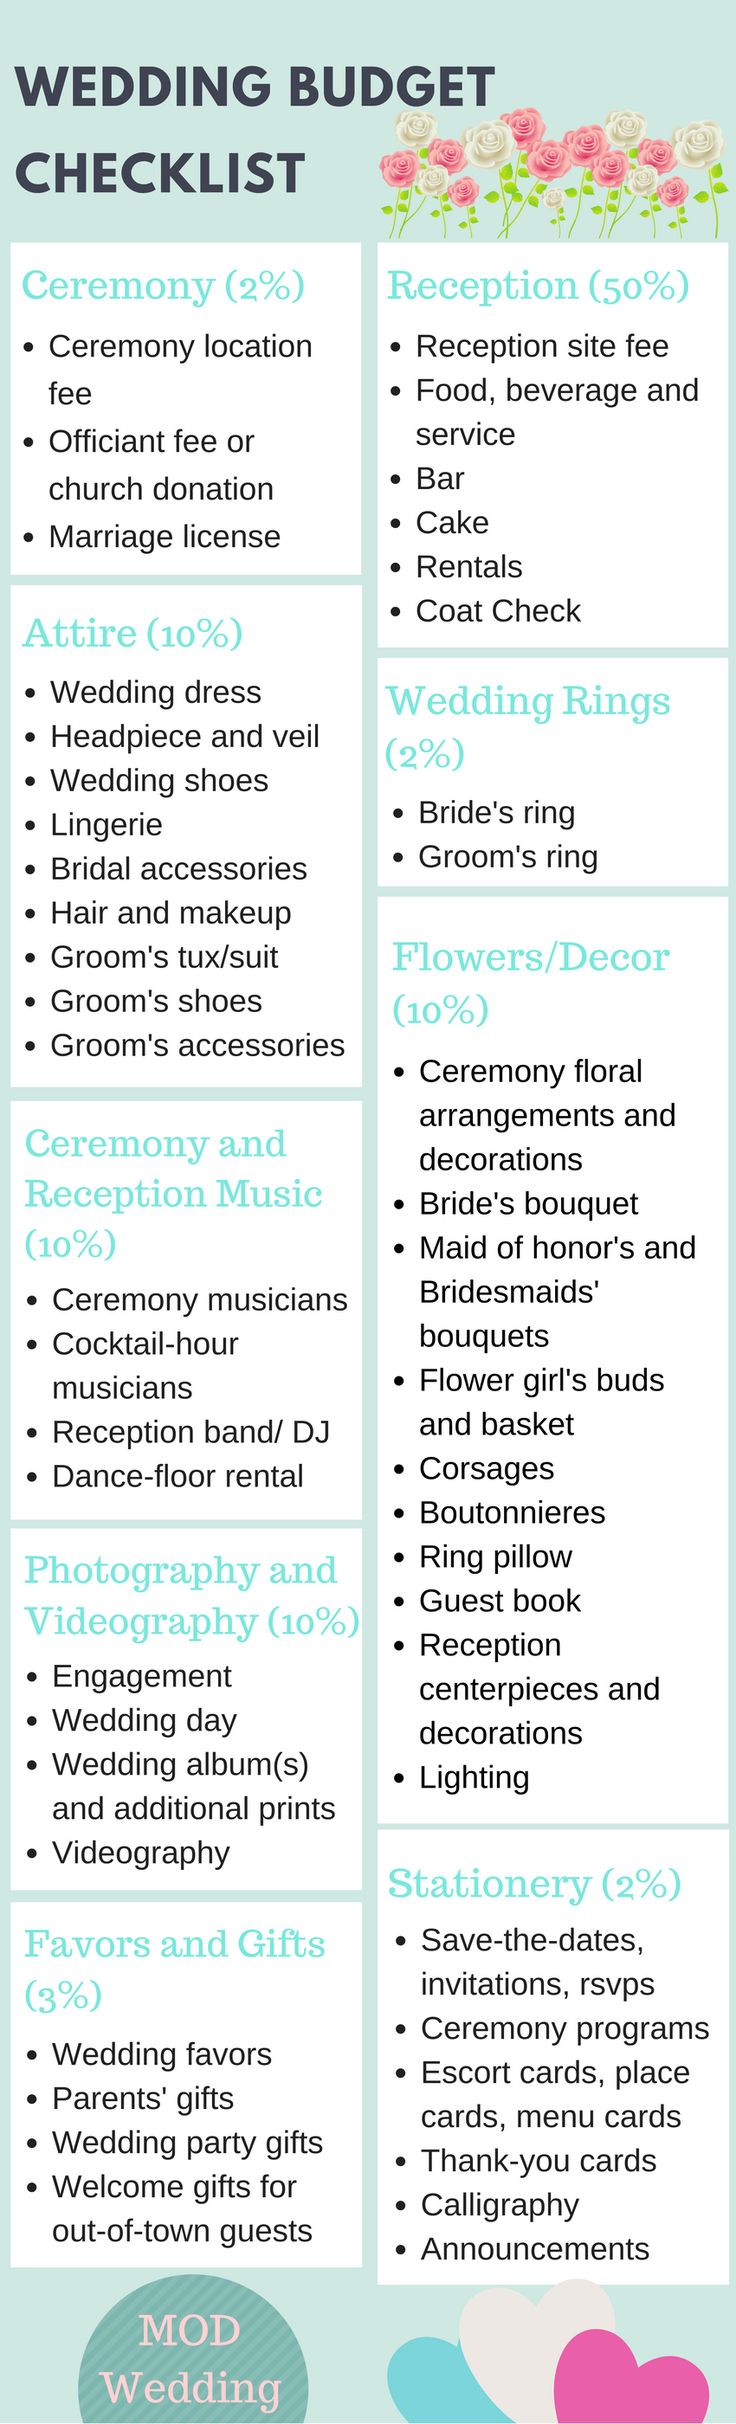 this comprehensive wedding budget checklist will help you budget how much to spend on each part